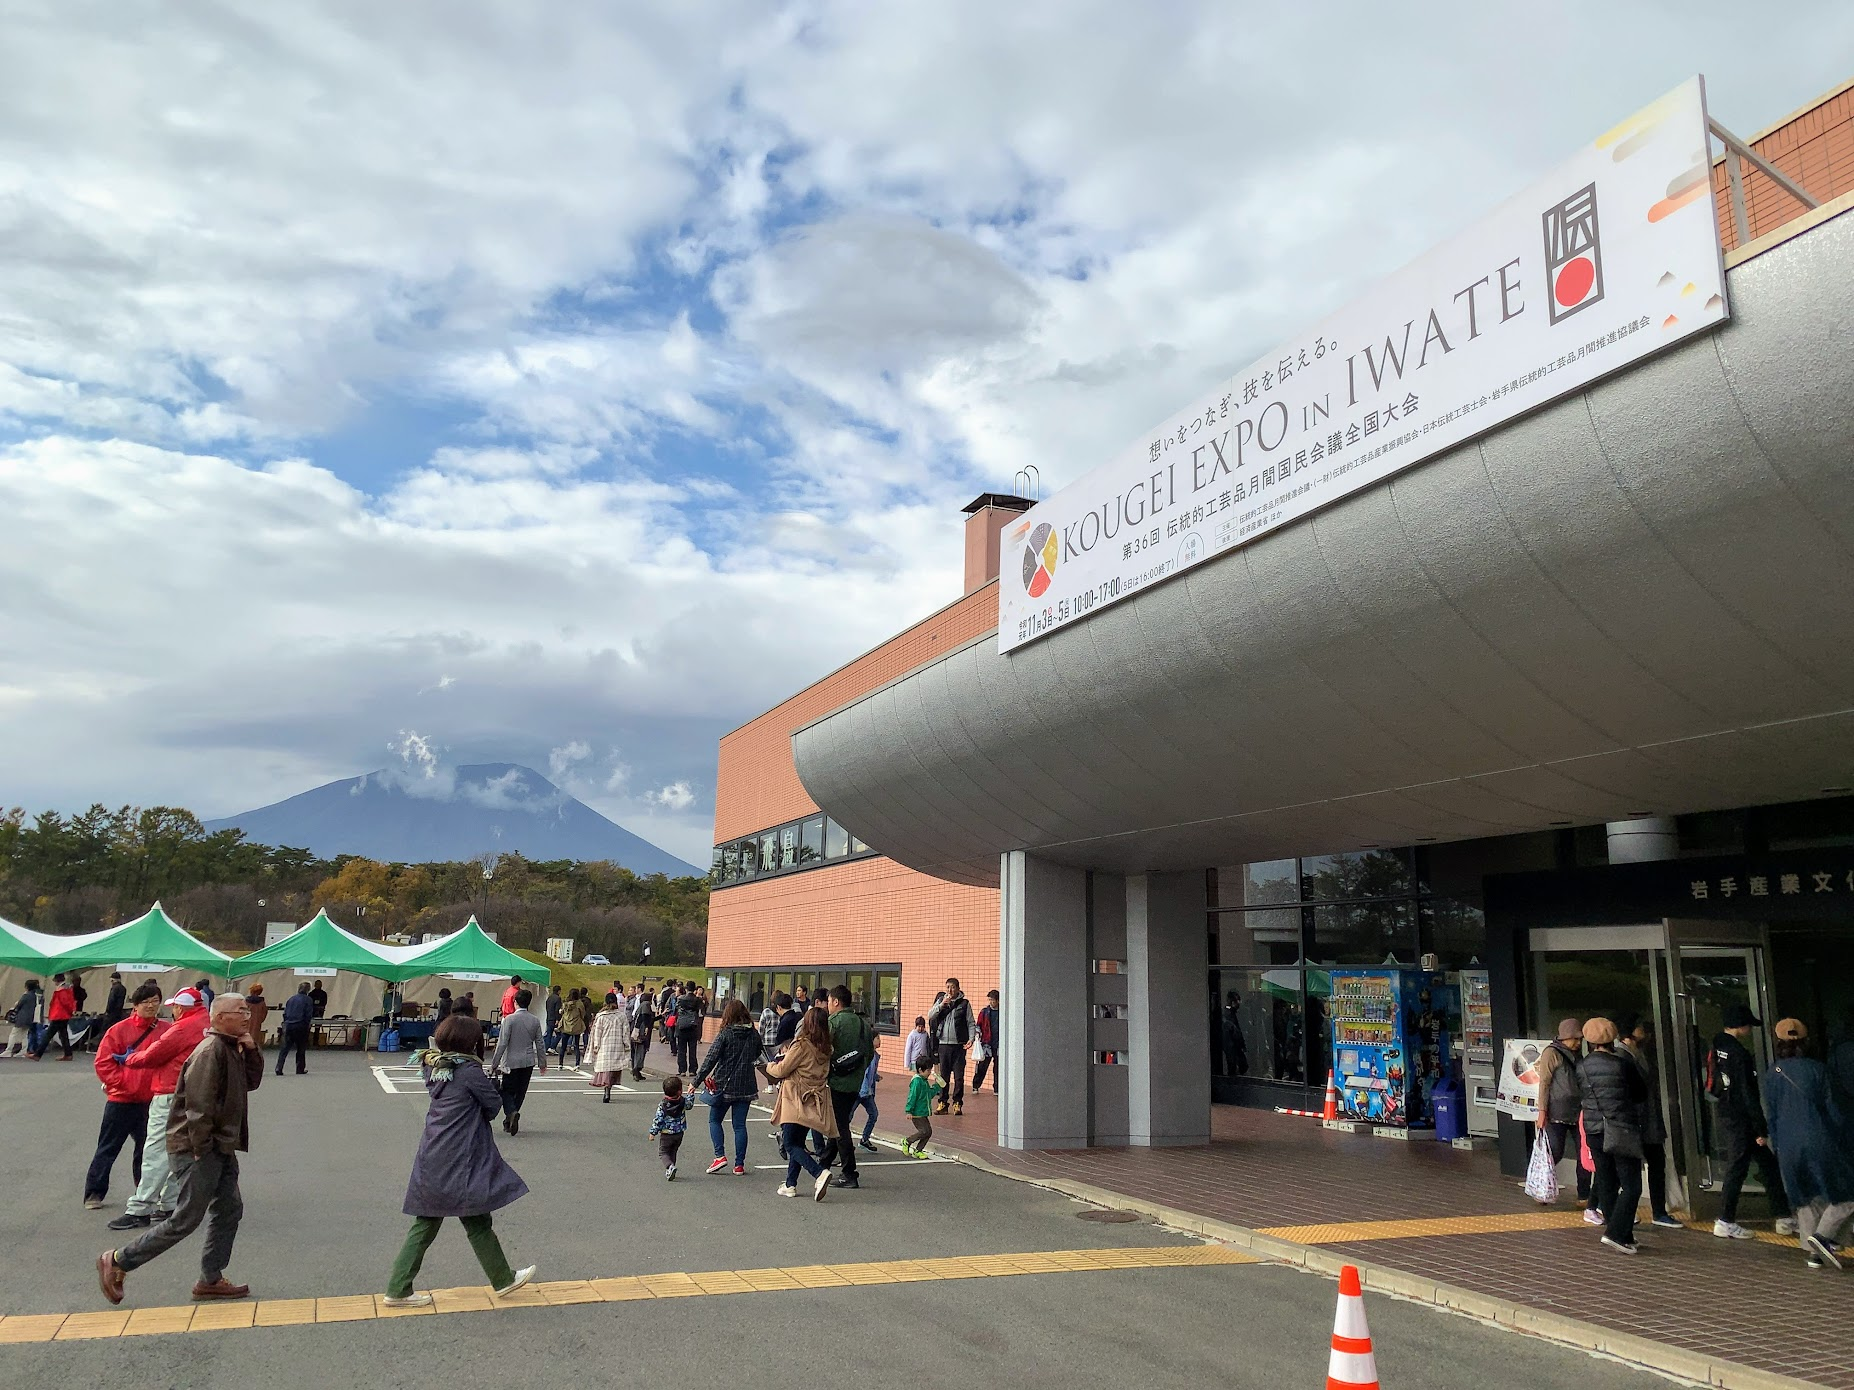 KOUGEI-EXPO IN IWATE 開幕。